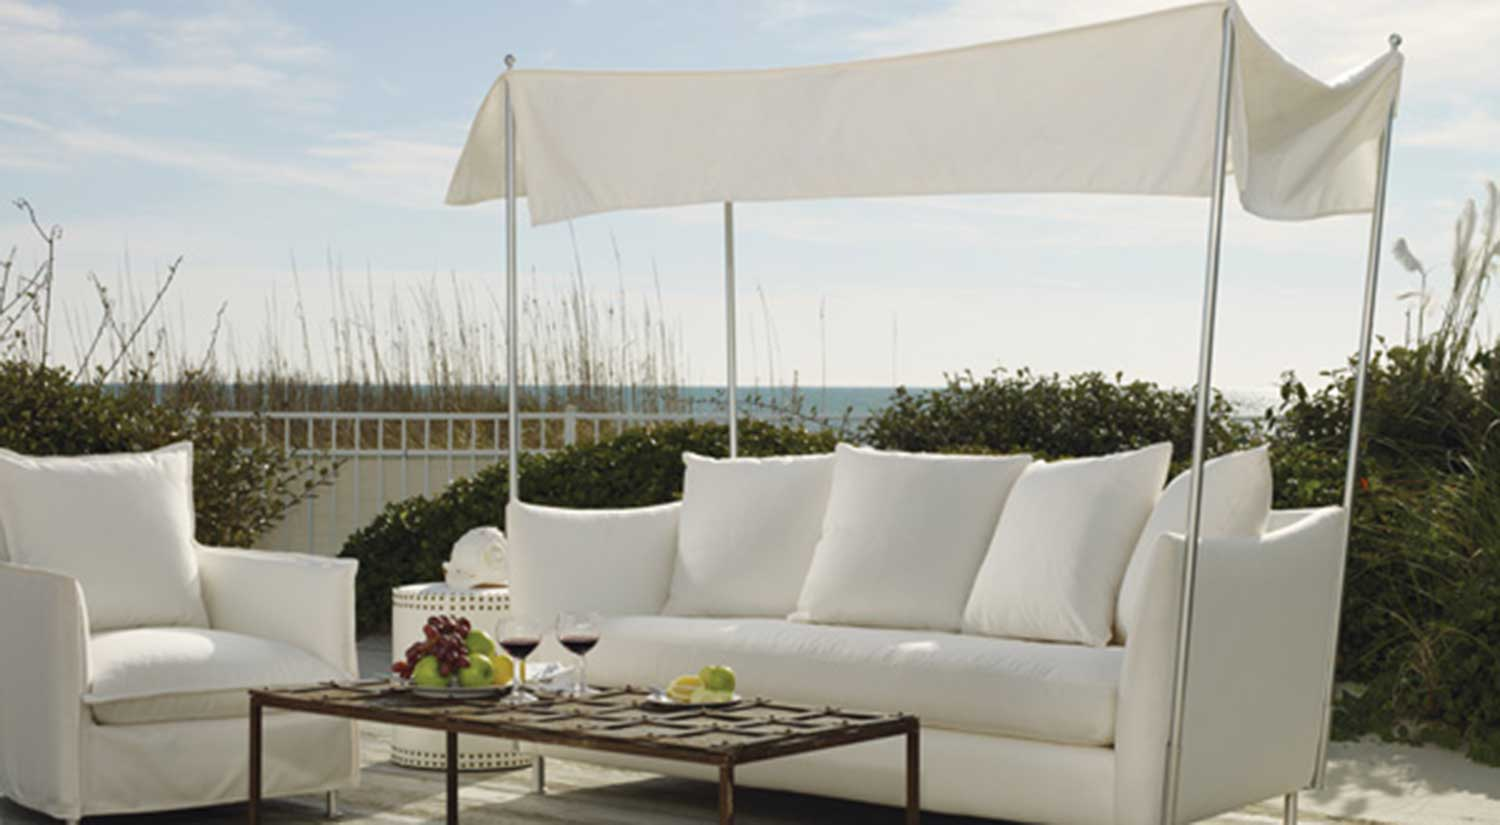 Circle Furniture - Oleander Outdoor Sofa With Canopy | Outdoor Furniture